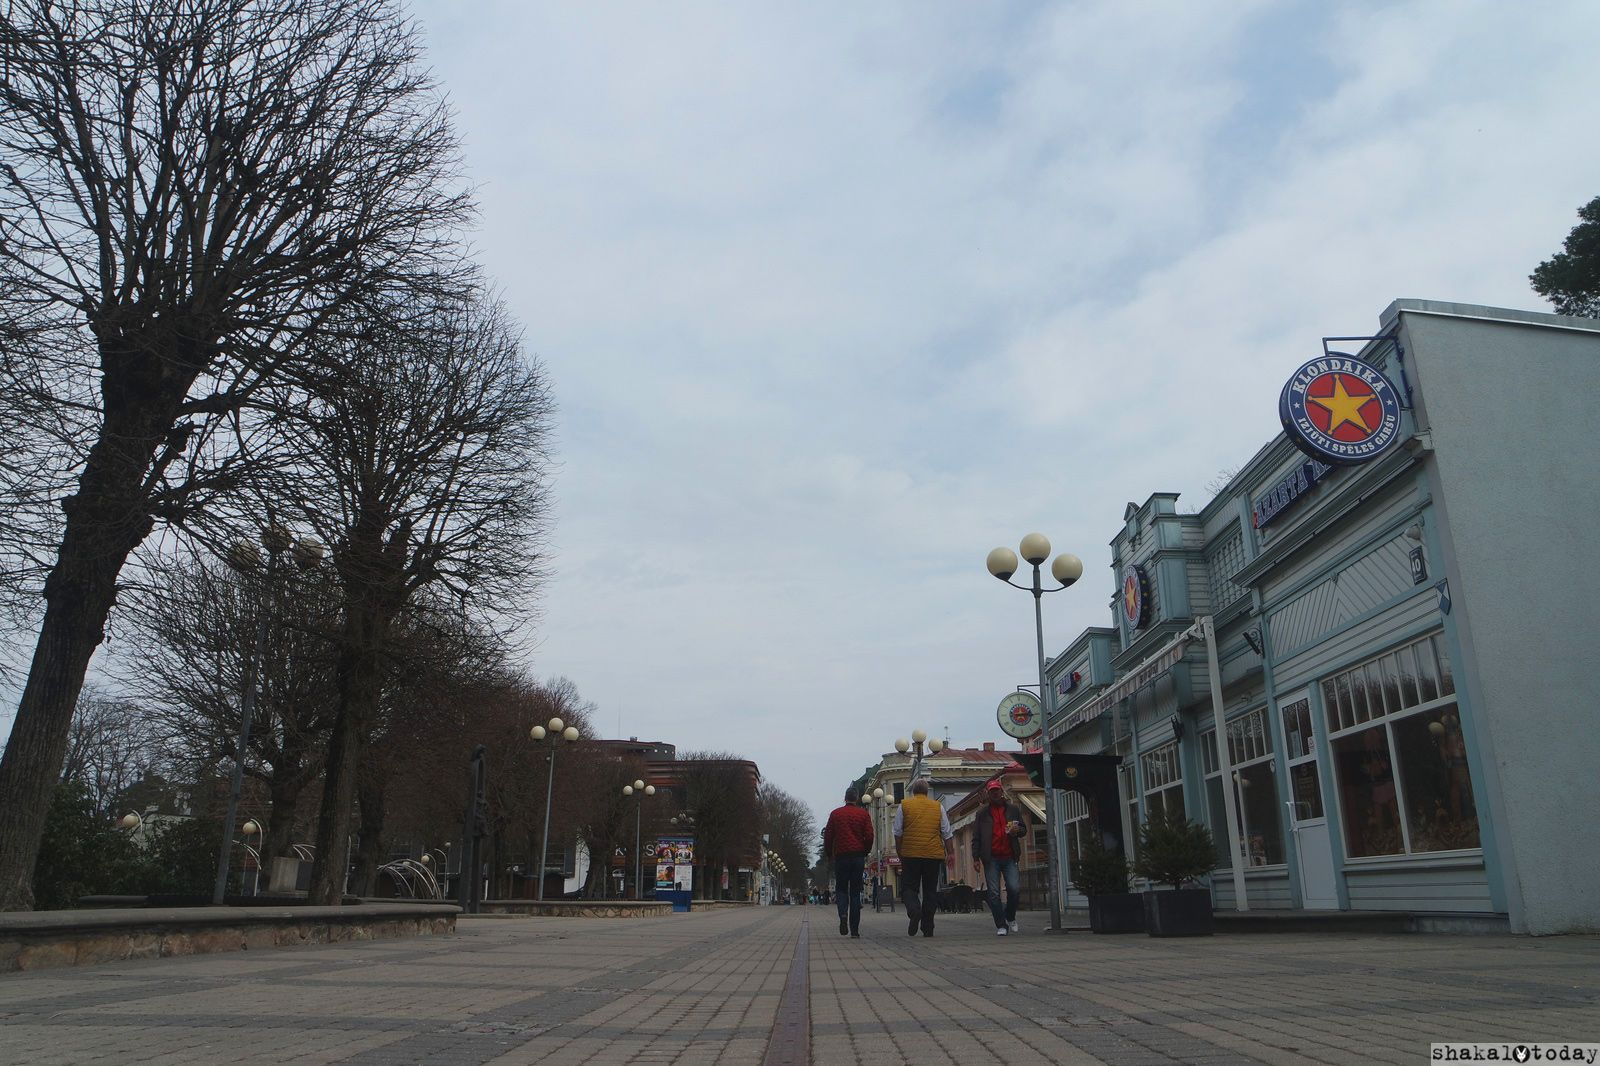 jurmala-shakal-today-0004.jpg